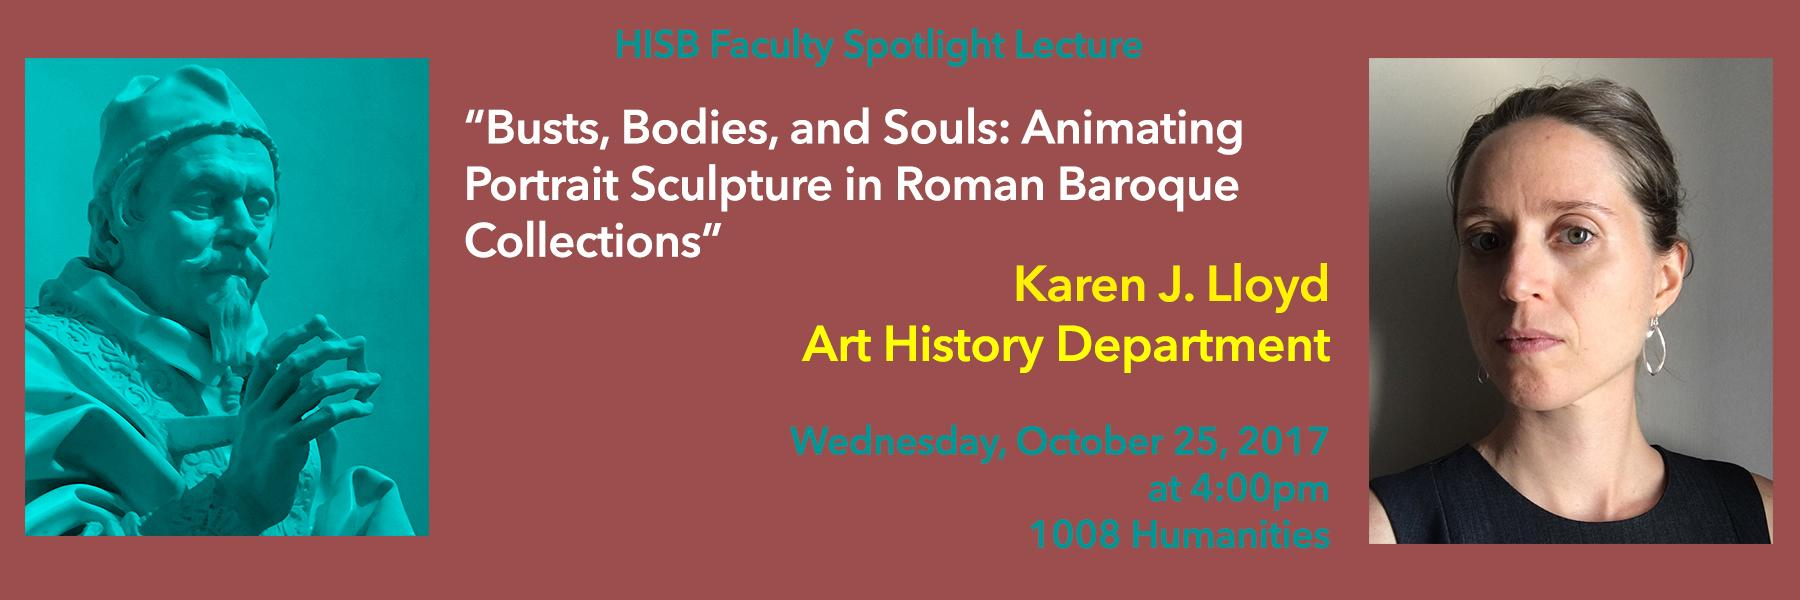 Faculty Spotlight Lecture